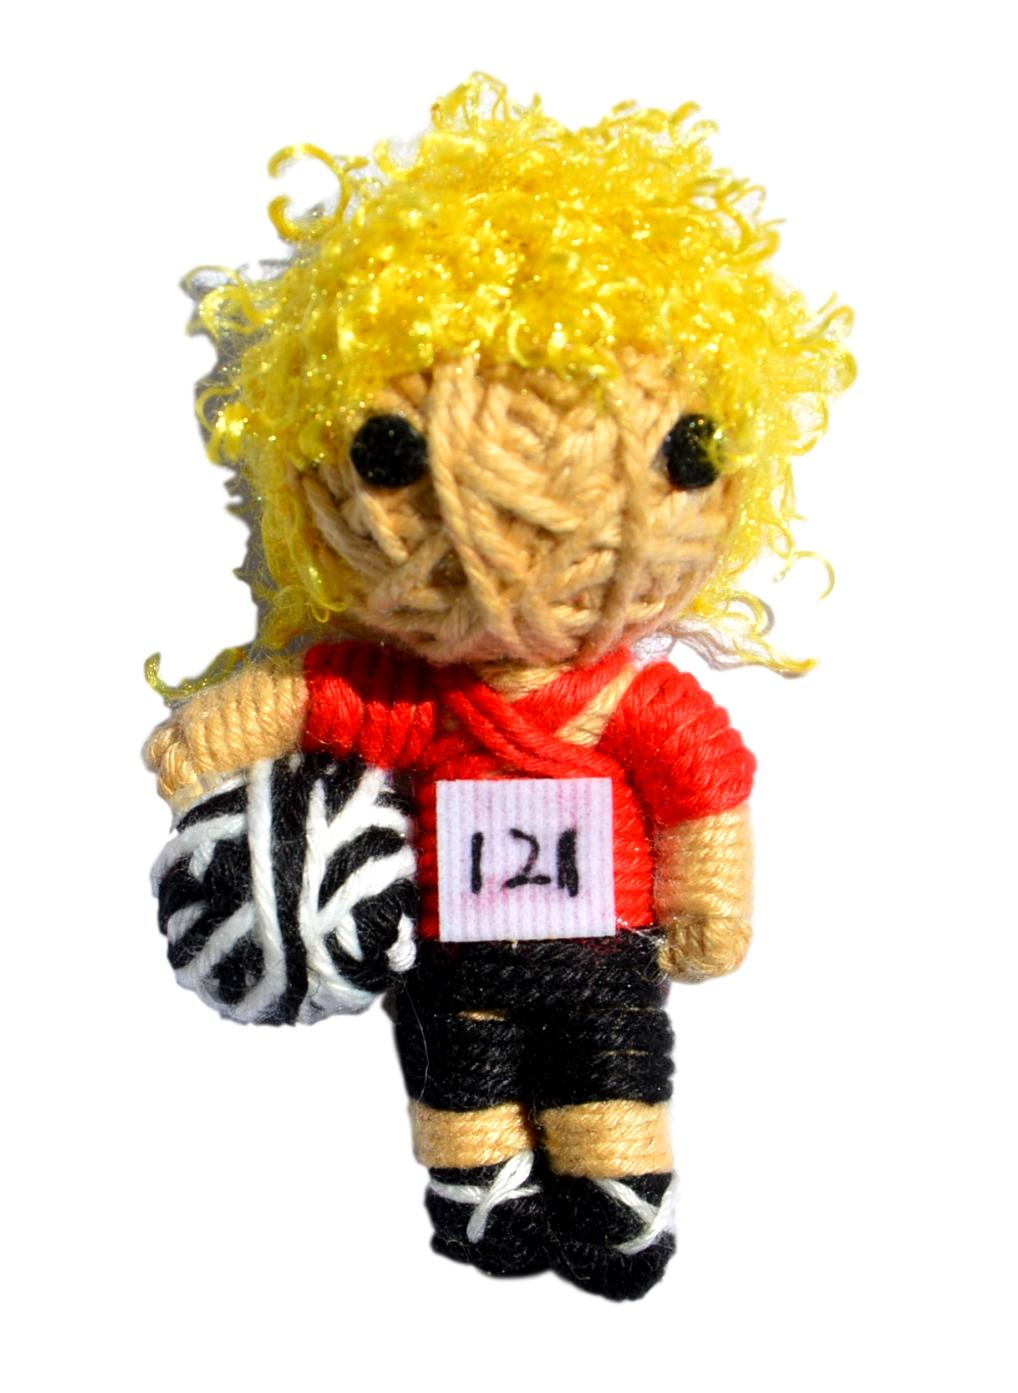 Freddy the Footballer String Doll Catnip Toy